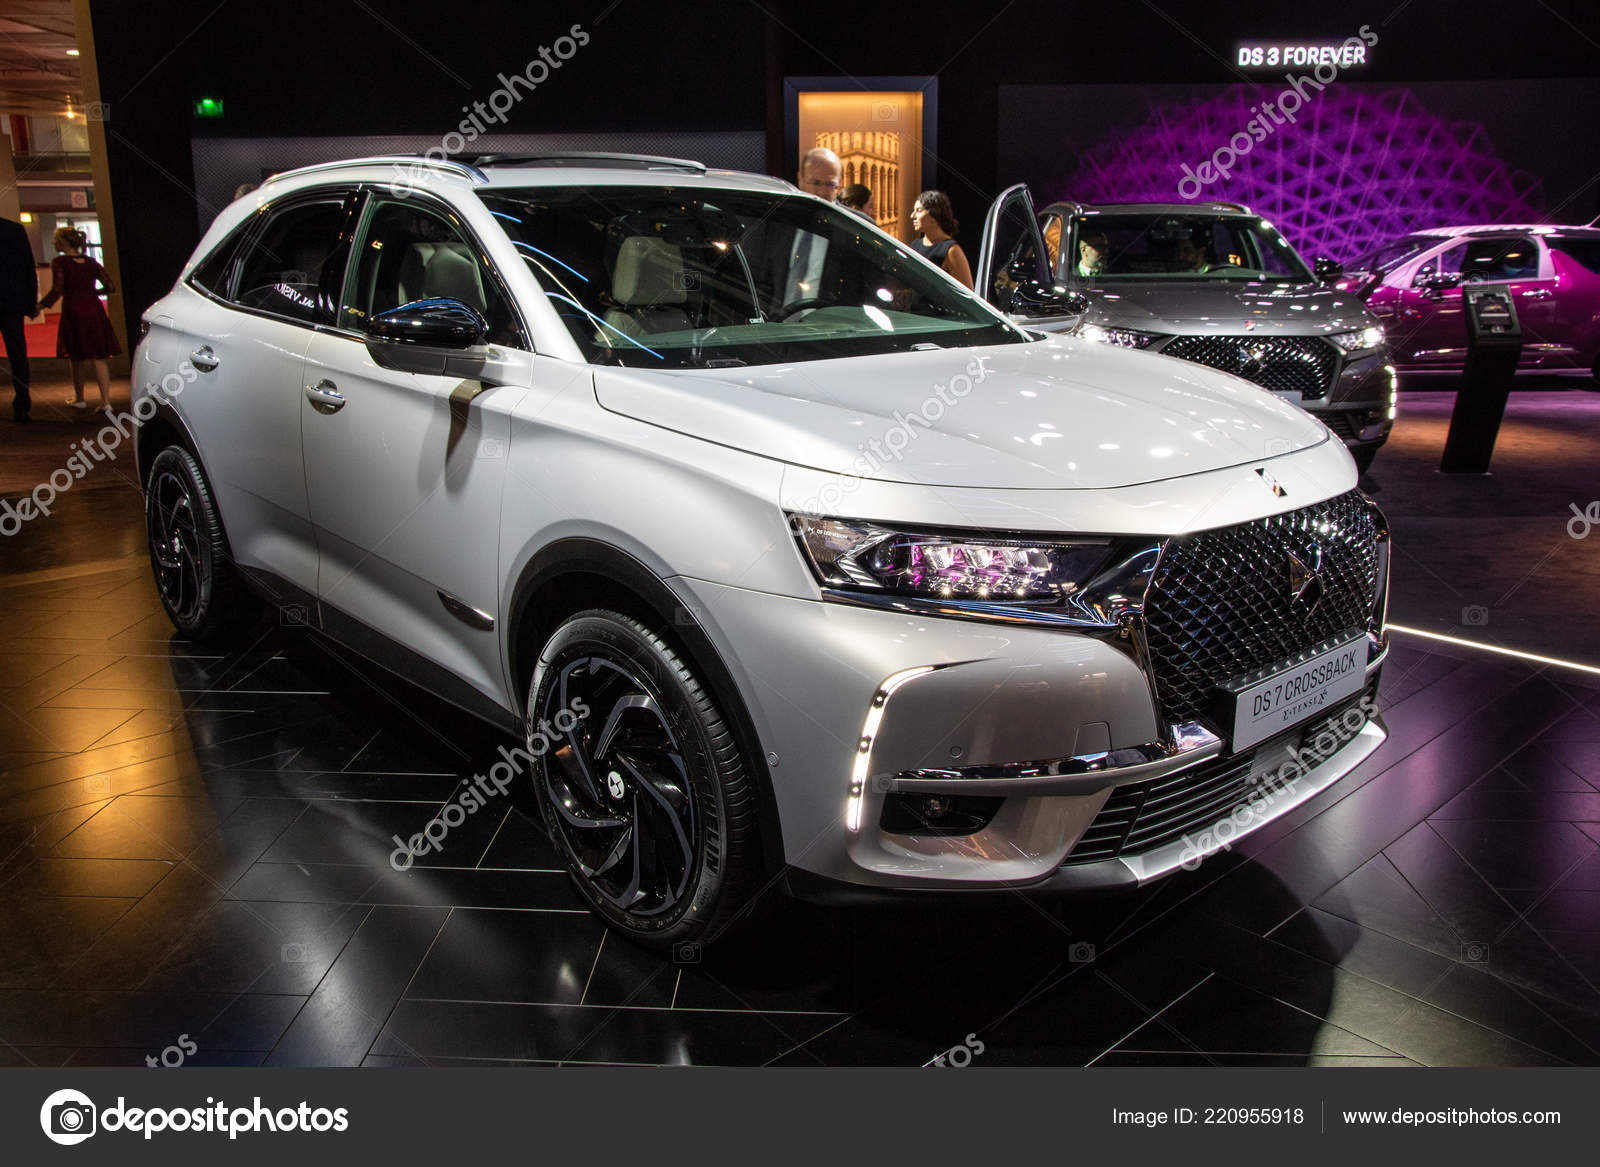 Citroen Ds7 Paris Oct 2018 Citroen Ds7 Crossback Tense Car Showcased Paris